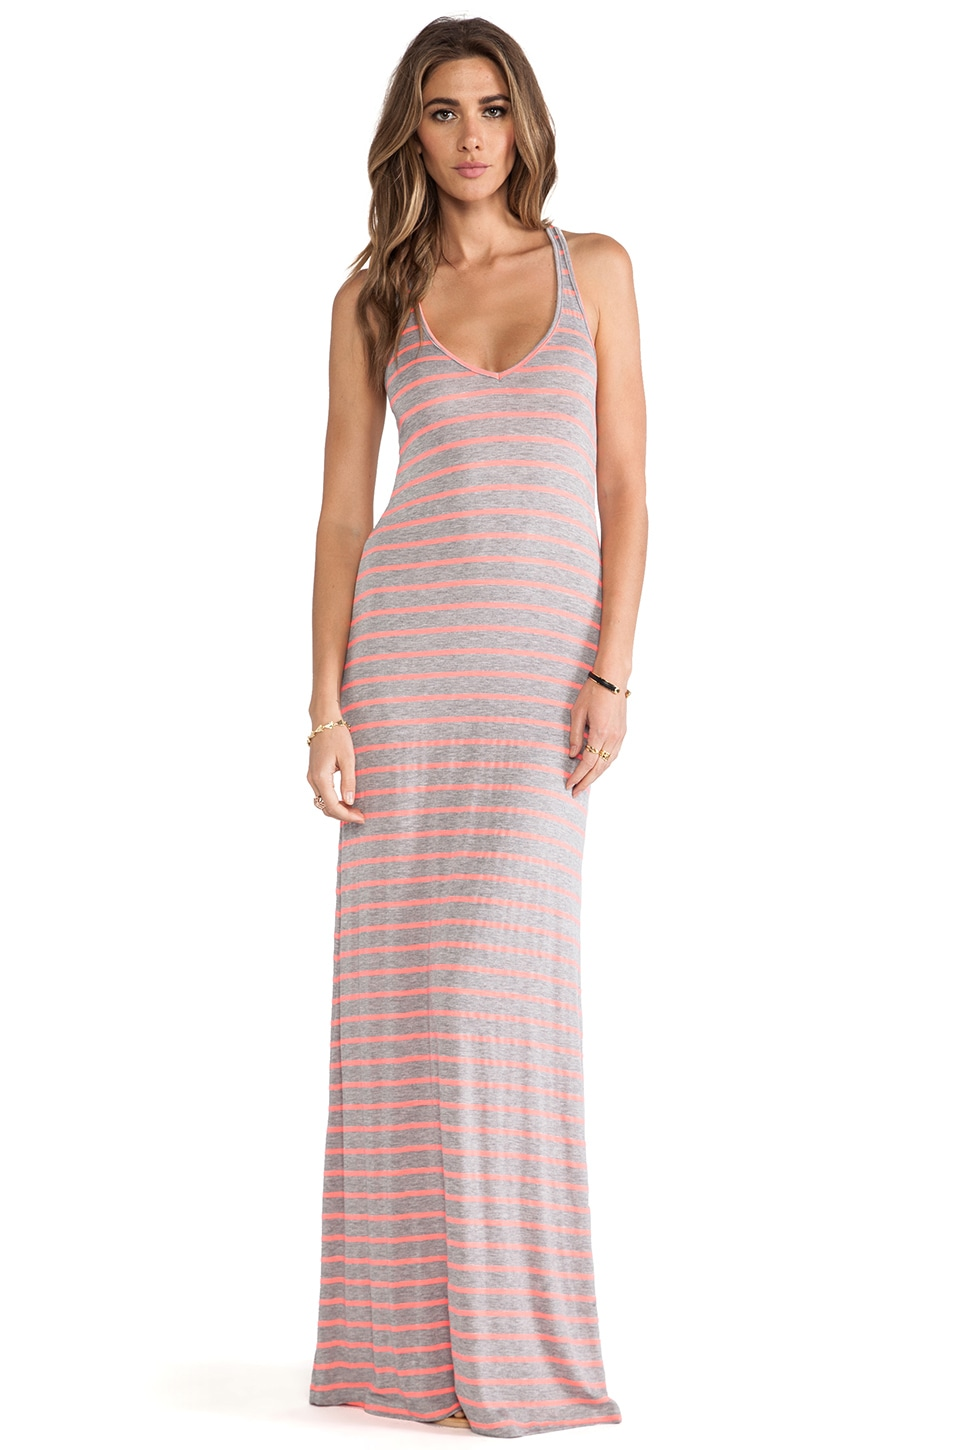 Feel the Piece Striped V Maxi Dress in Coral & Grey